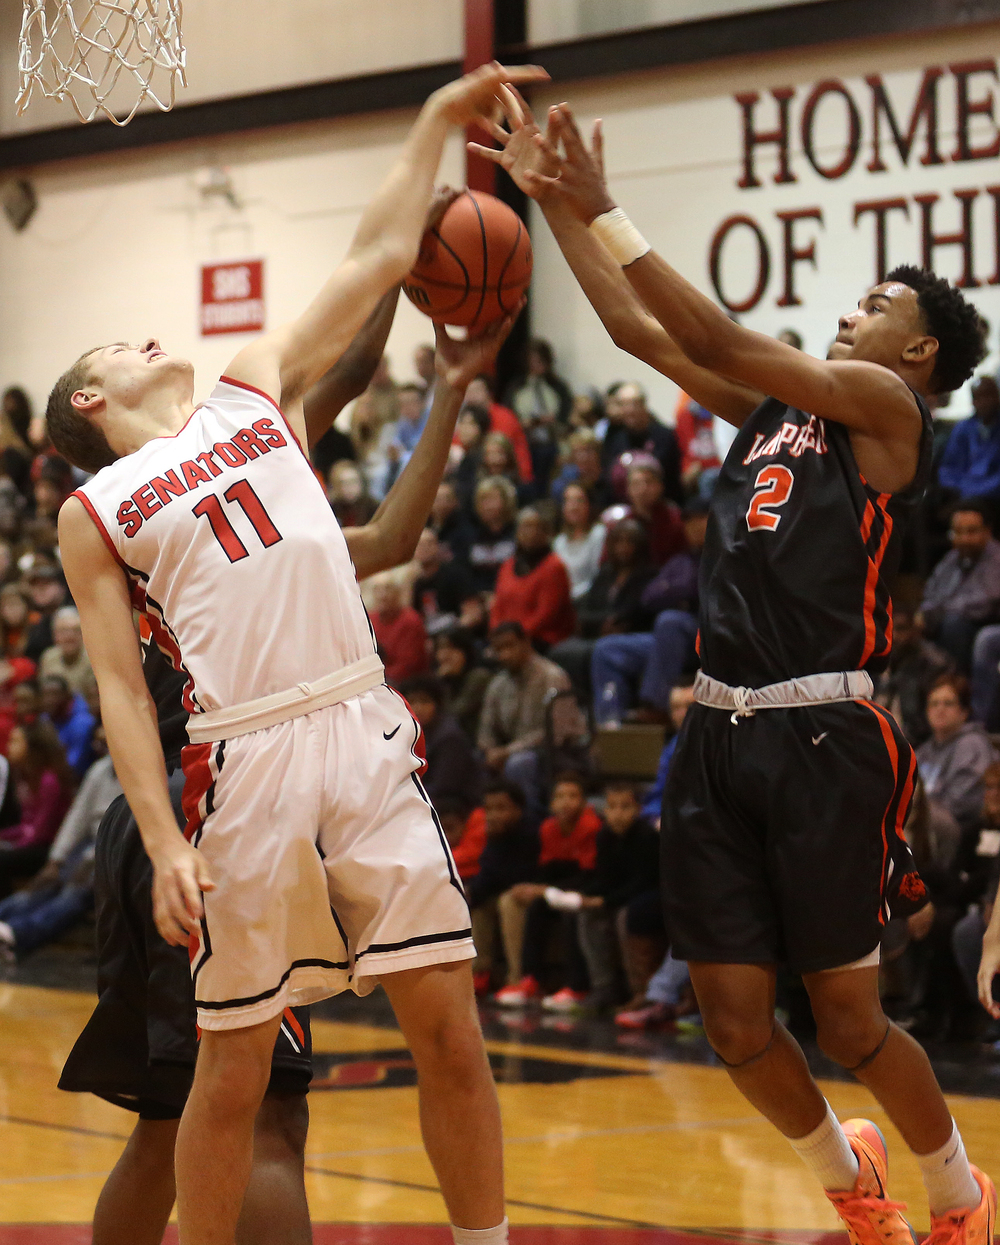 Lanphier's Cardell McGee at right gets tangled up with Springfield's Matt Sandberg while trying to recover a rebound. Lanphier defeated Springfield High School 64-54 in boys basketball action at Springfield's Willard Duey Gym on Tuesday evening, Feb. 10, 2015. David Spencer/The State Journal-Register